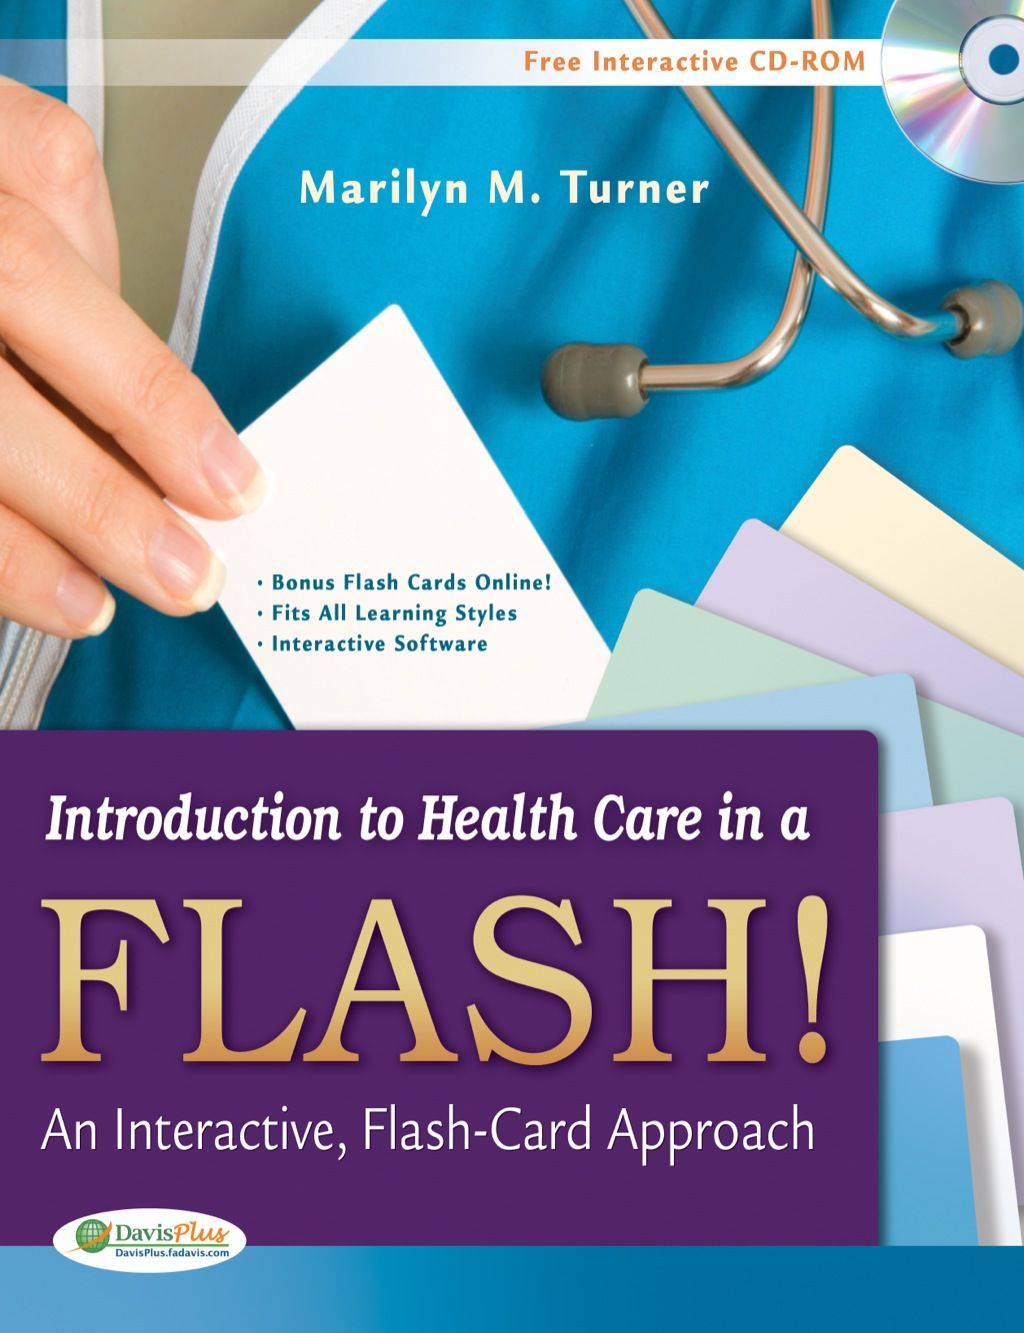 Introduction to Health Care in a Flash! An Interactive Flash